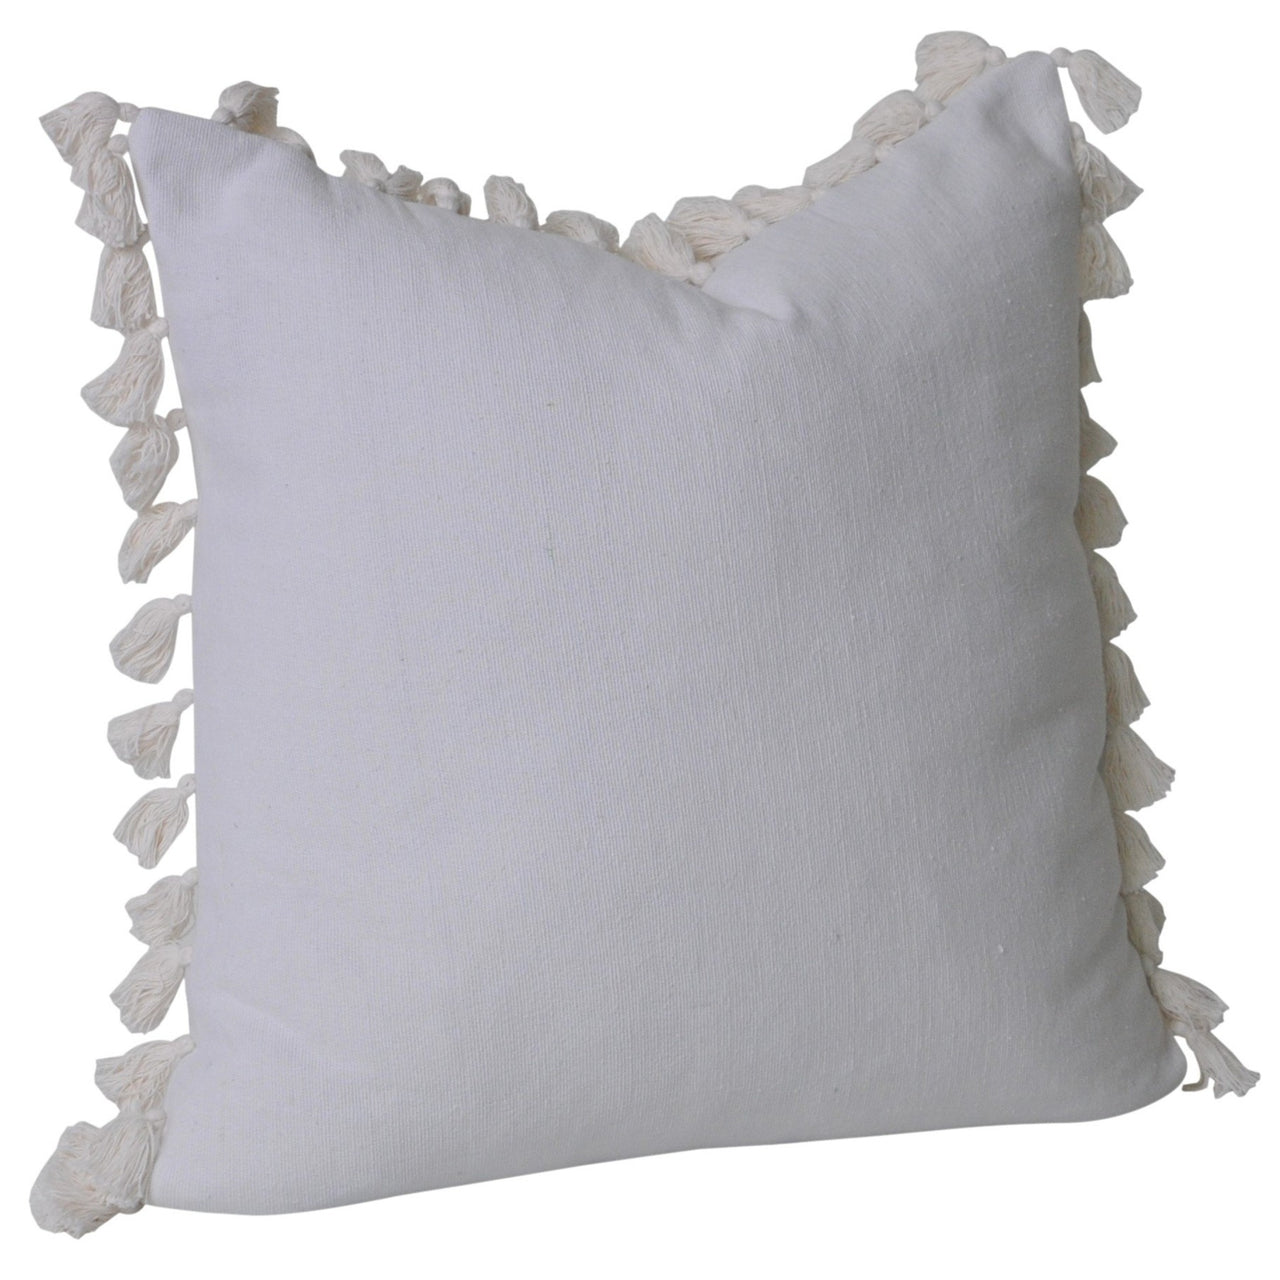 Tayla Tassel Cushion- White